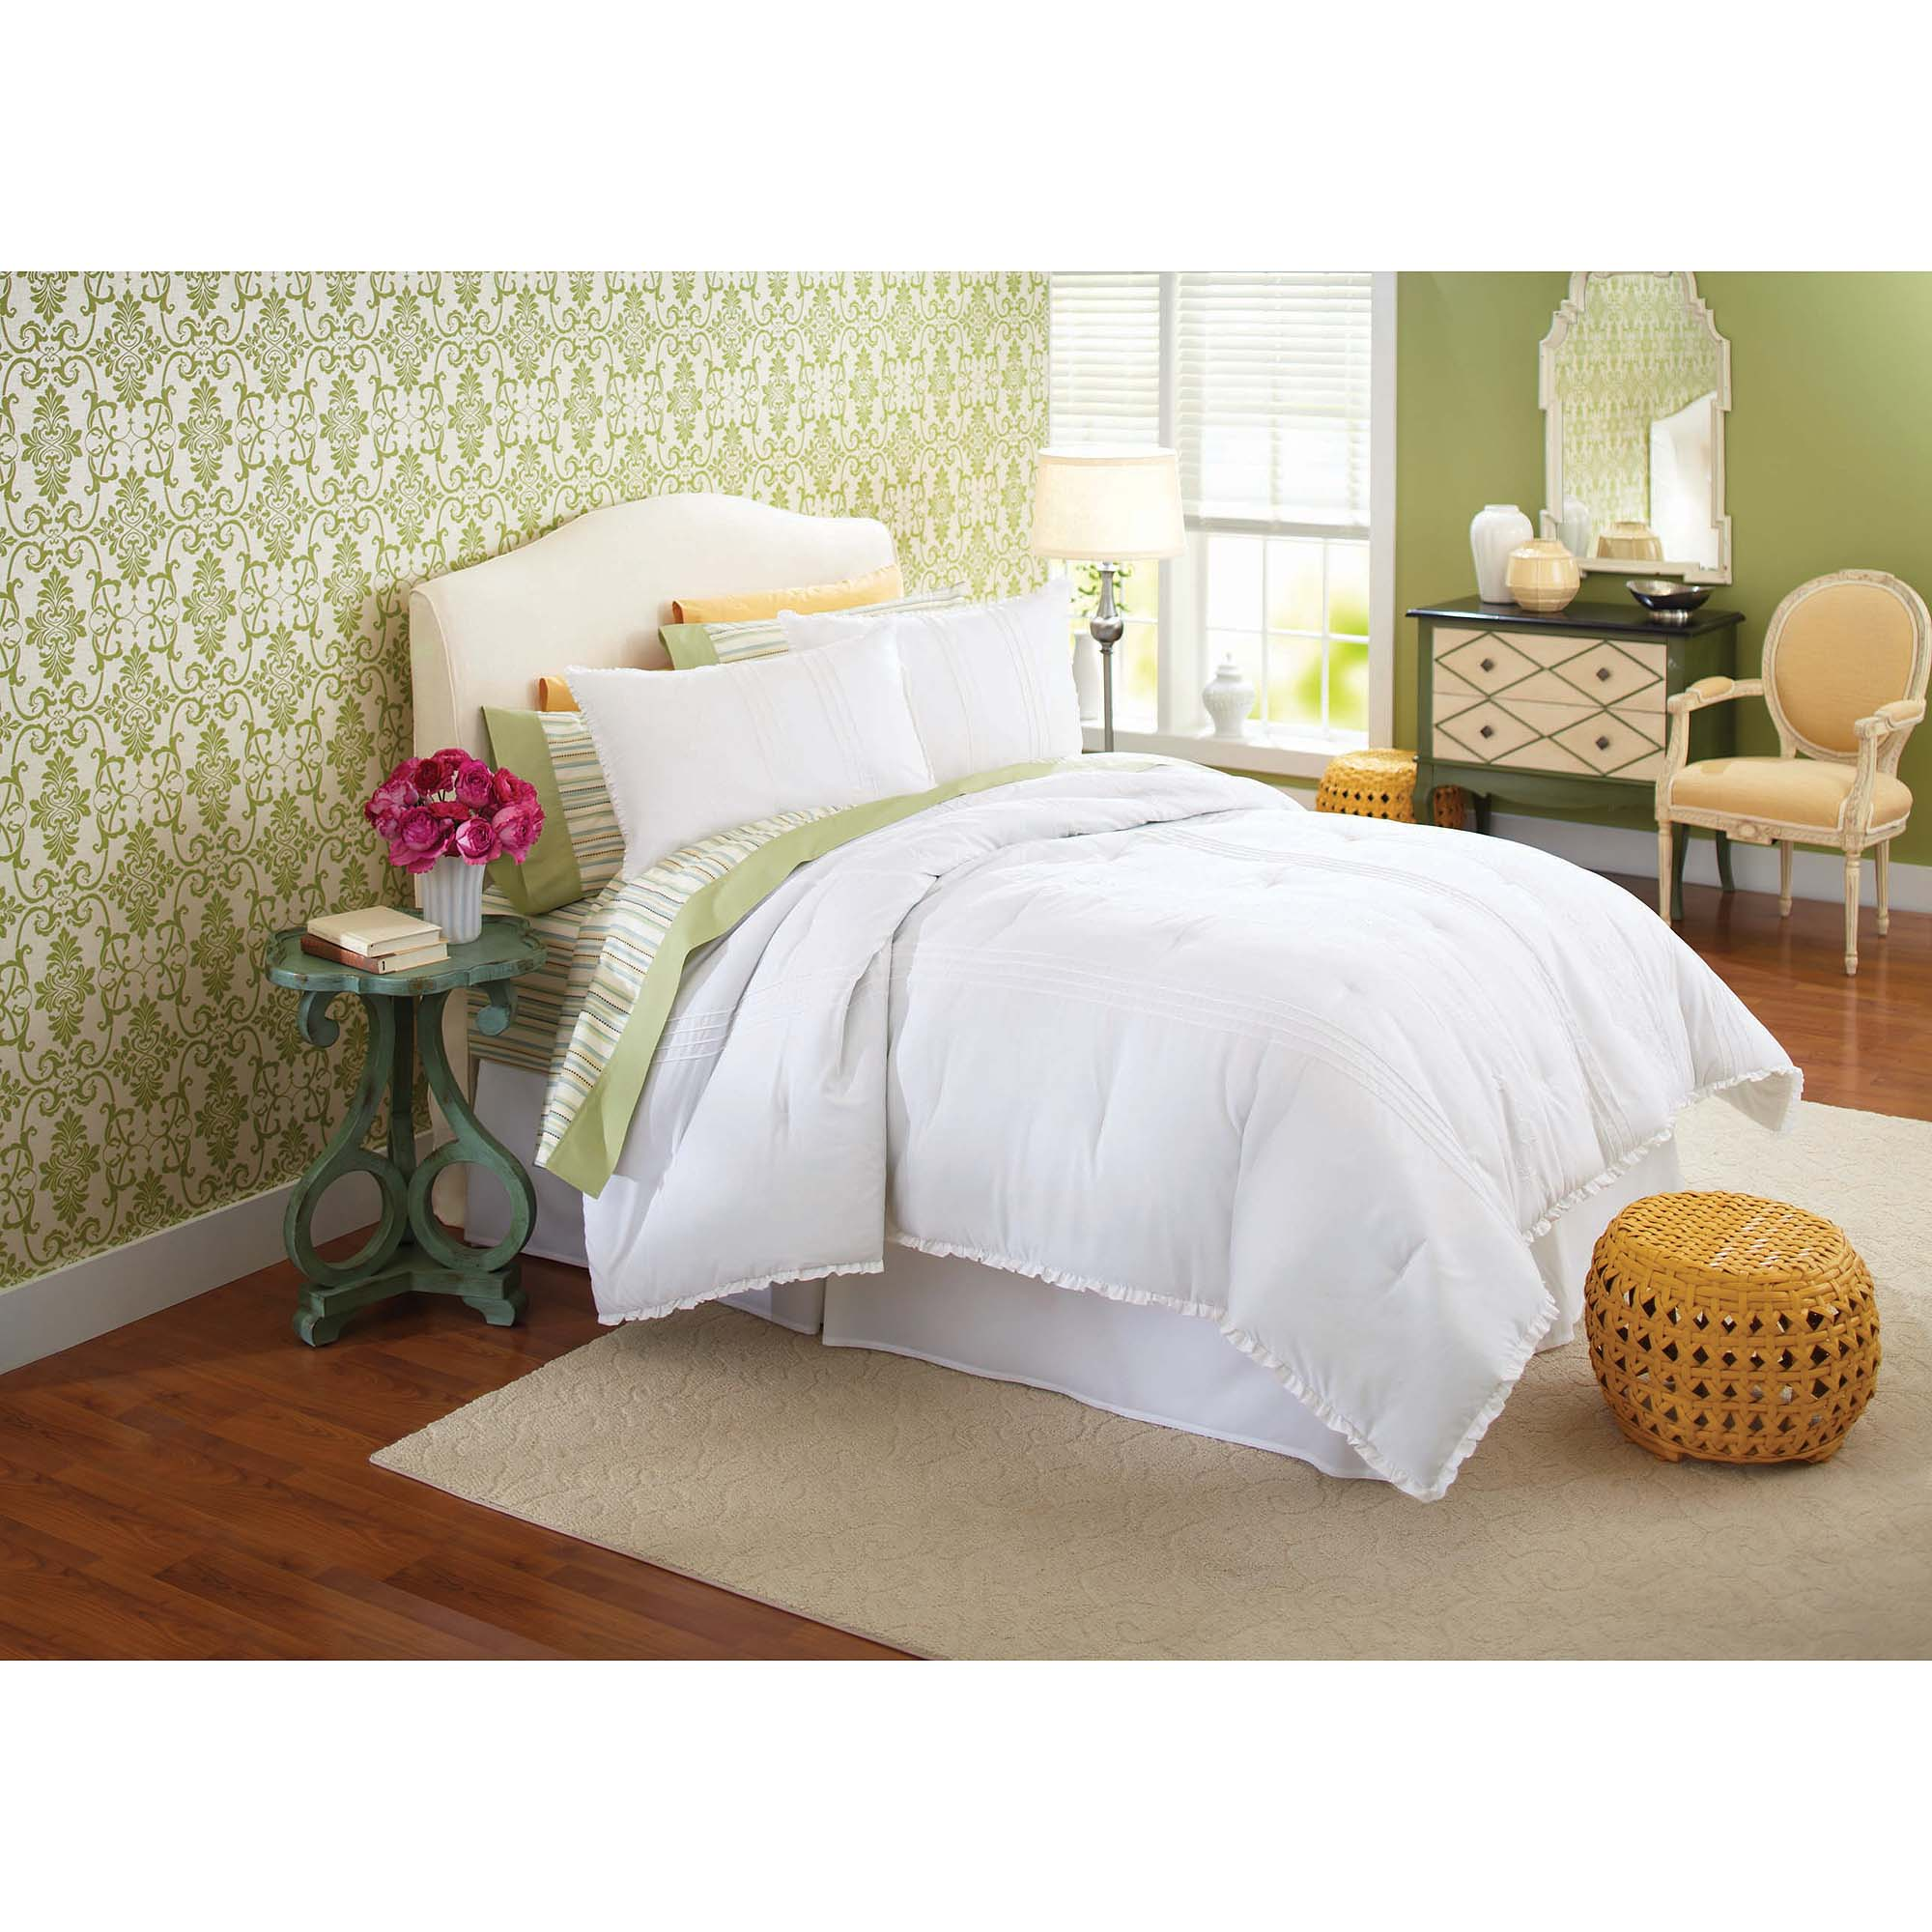 Better Homes and Gardens Comforter Set Collection, Antique Country